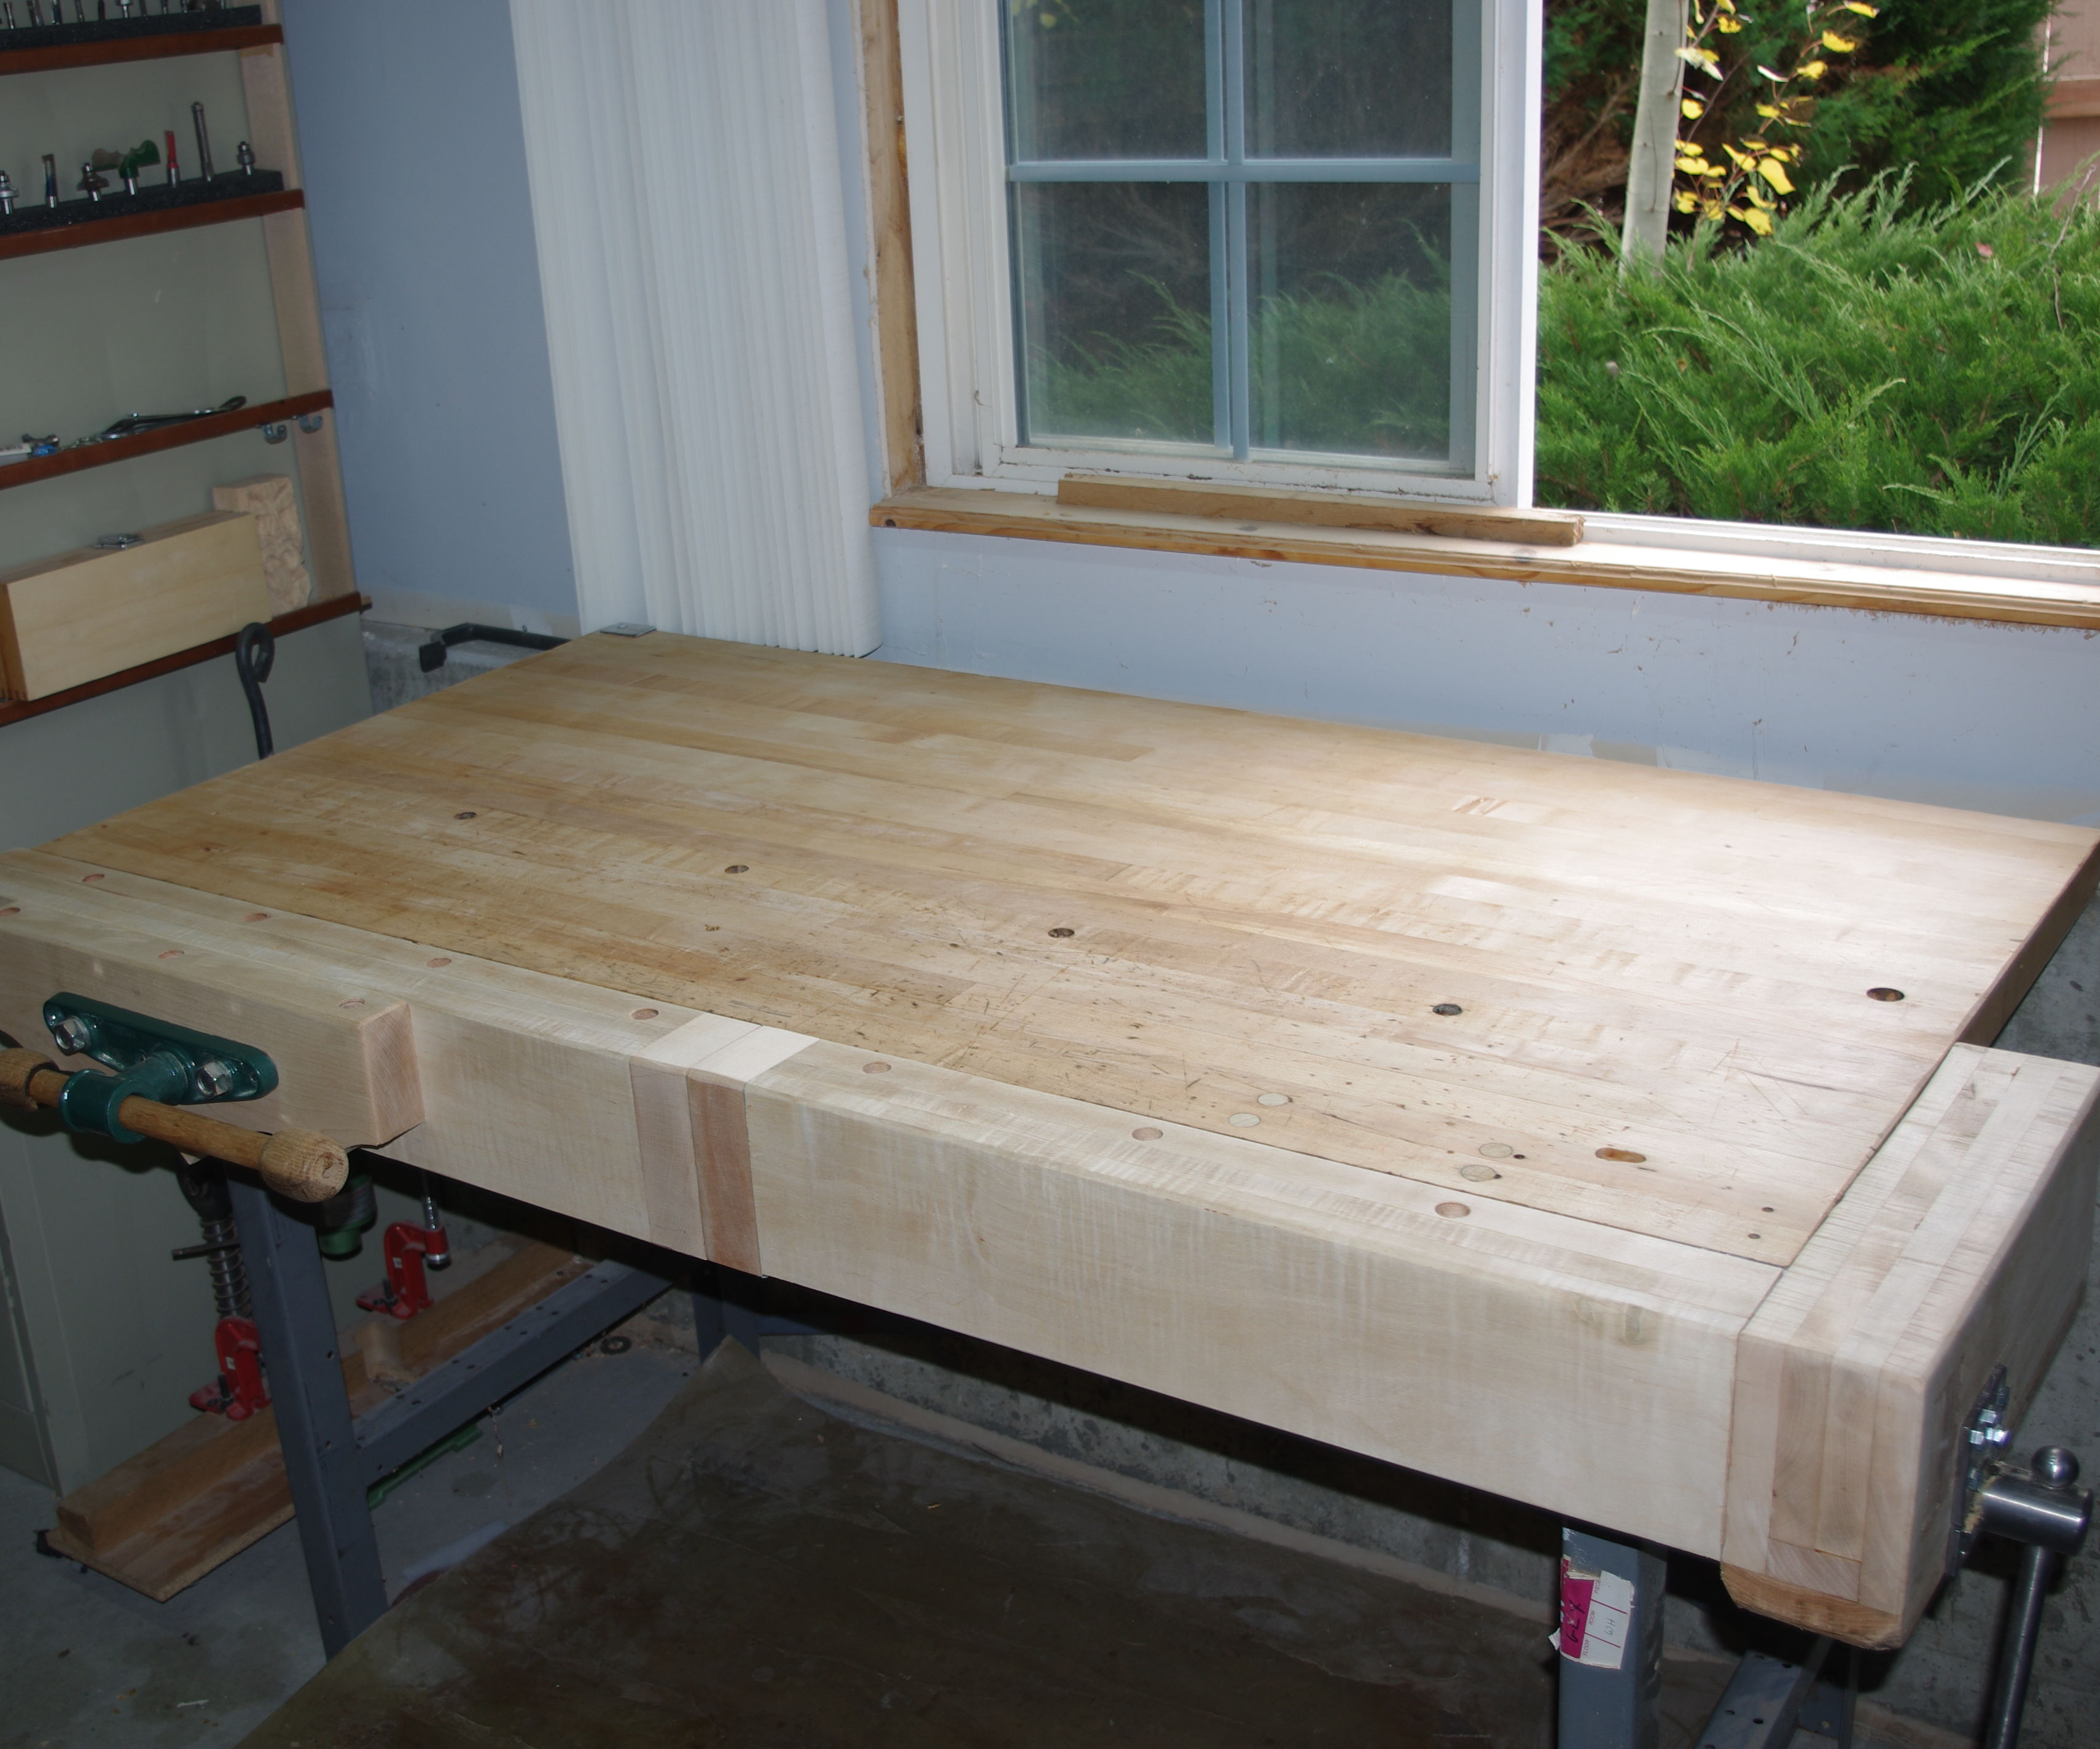 Adding front and tail vises to a maple work table